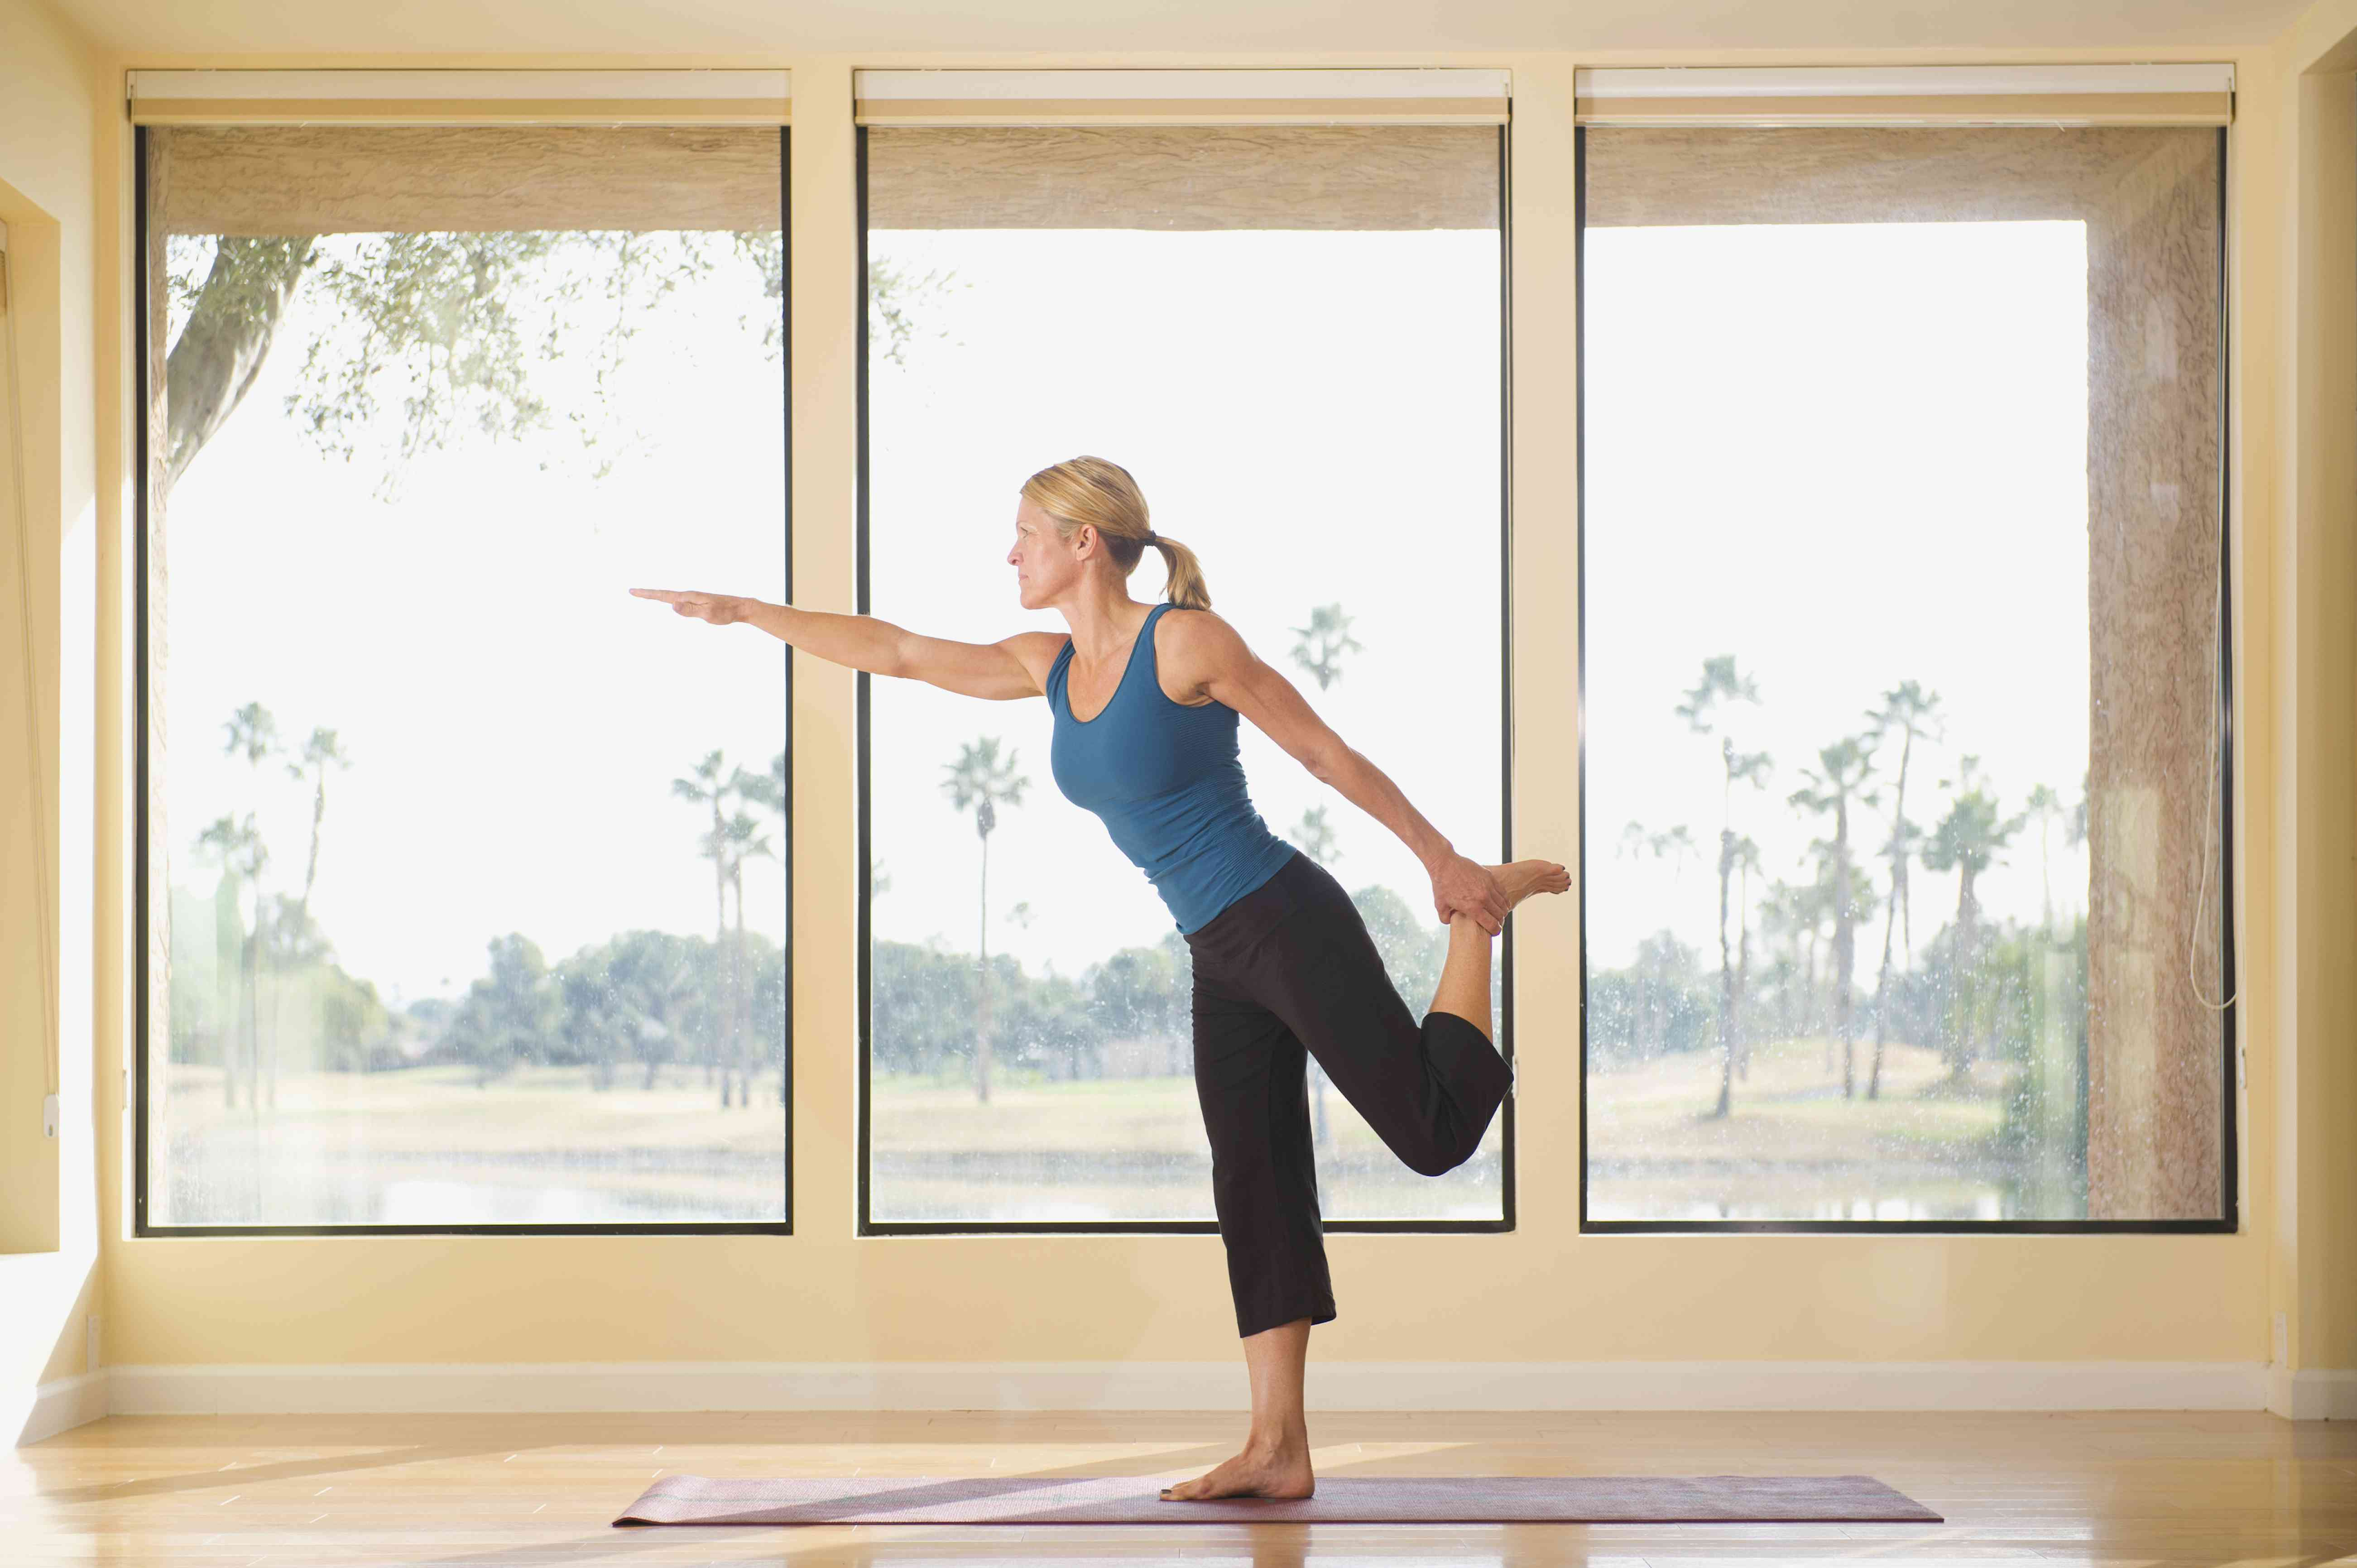 A woman performing yoga balance exercises near a large window